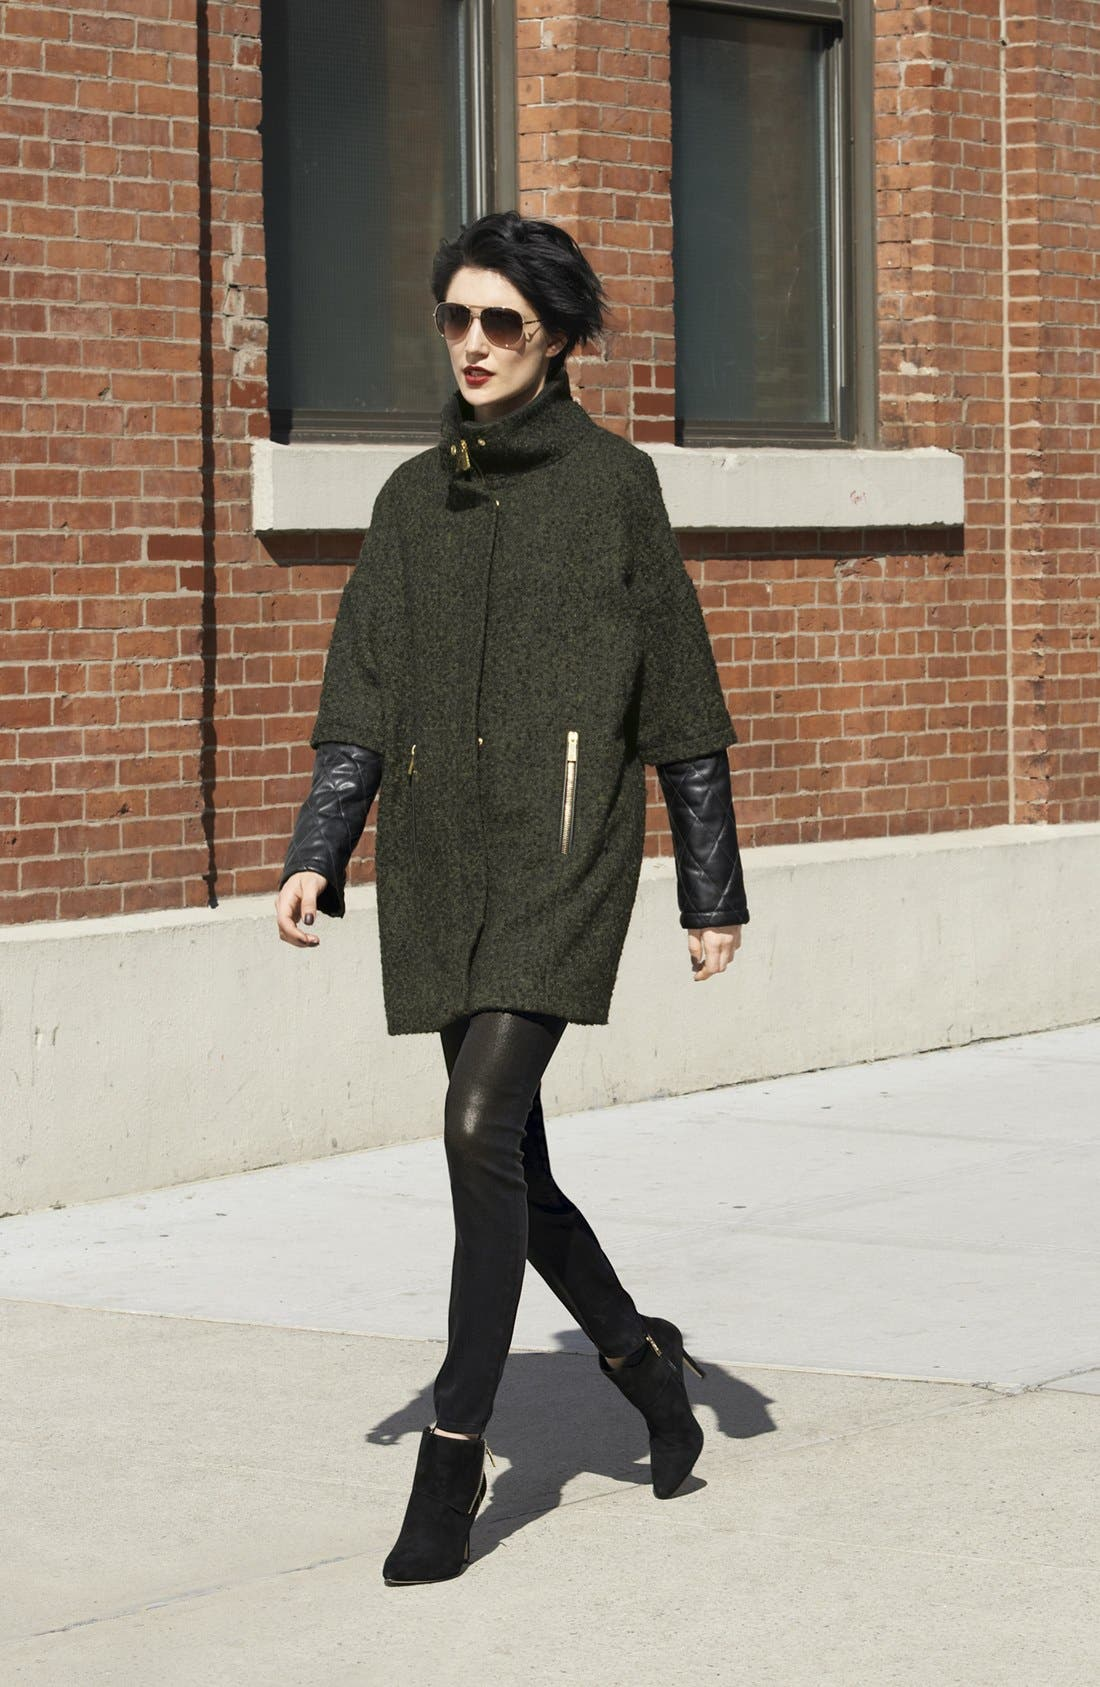 Alternate Image 1 Selected - Vince Camuto Tweed & Faux Leather Coat with J Brand Skinny Jeans